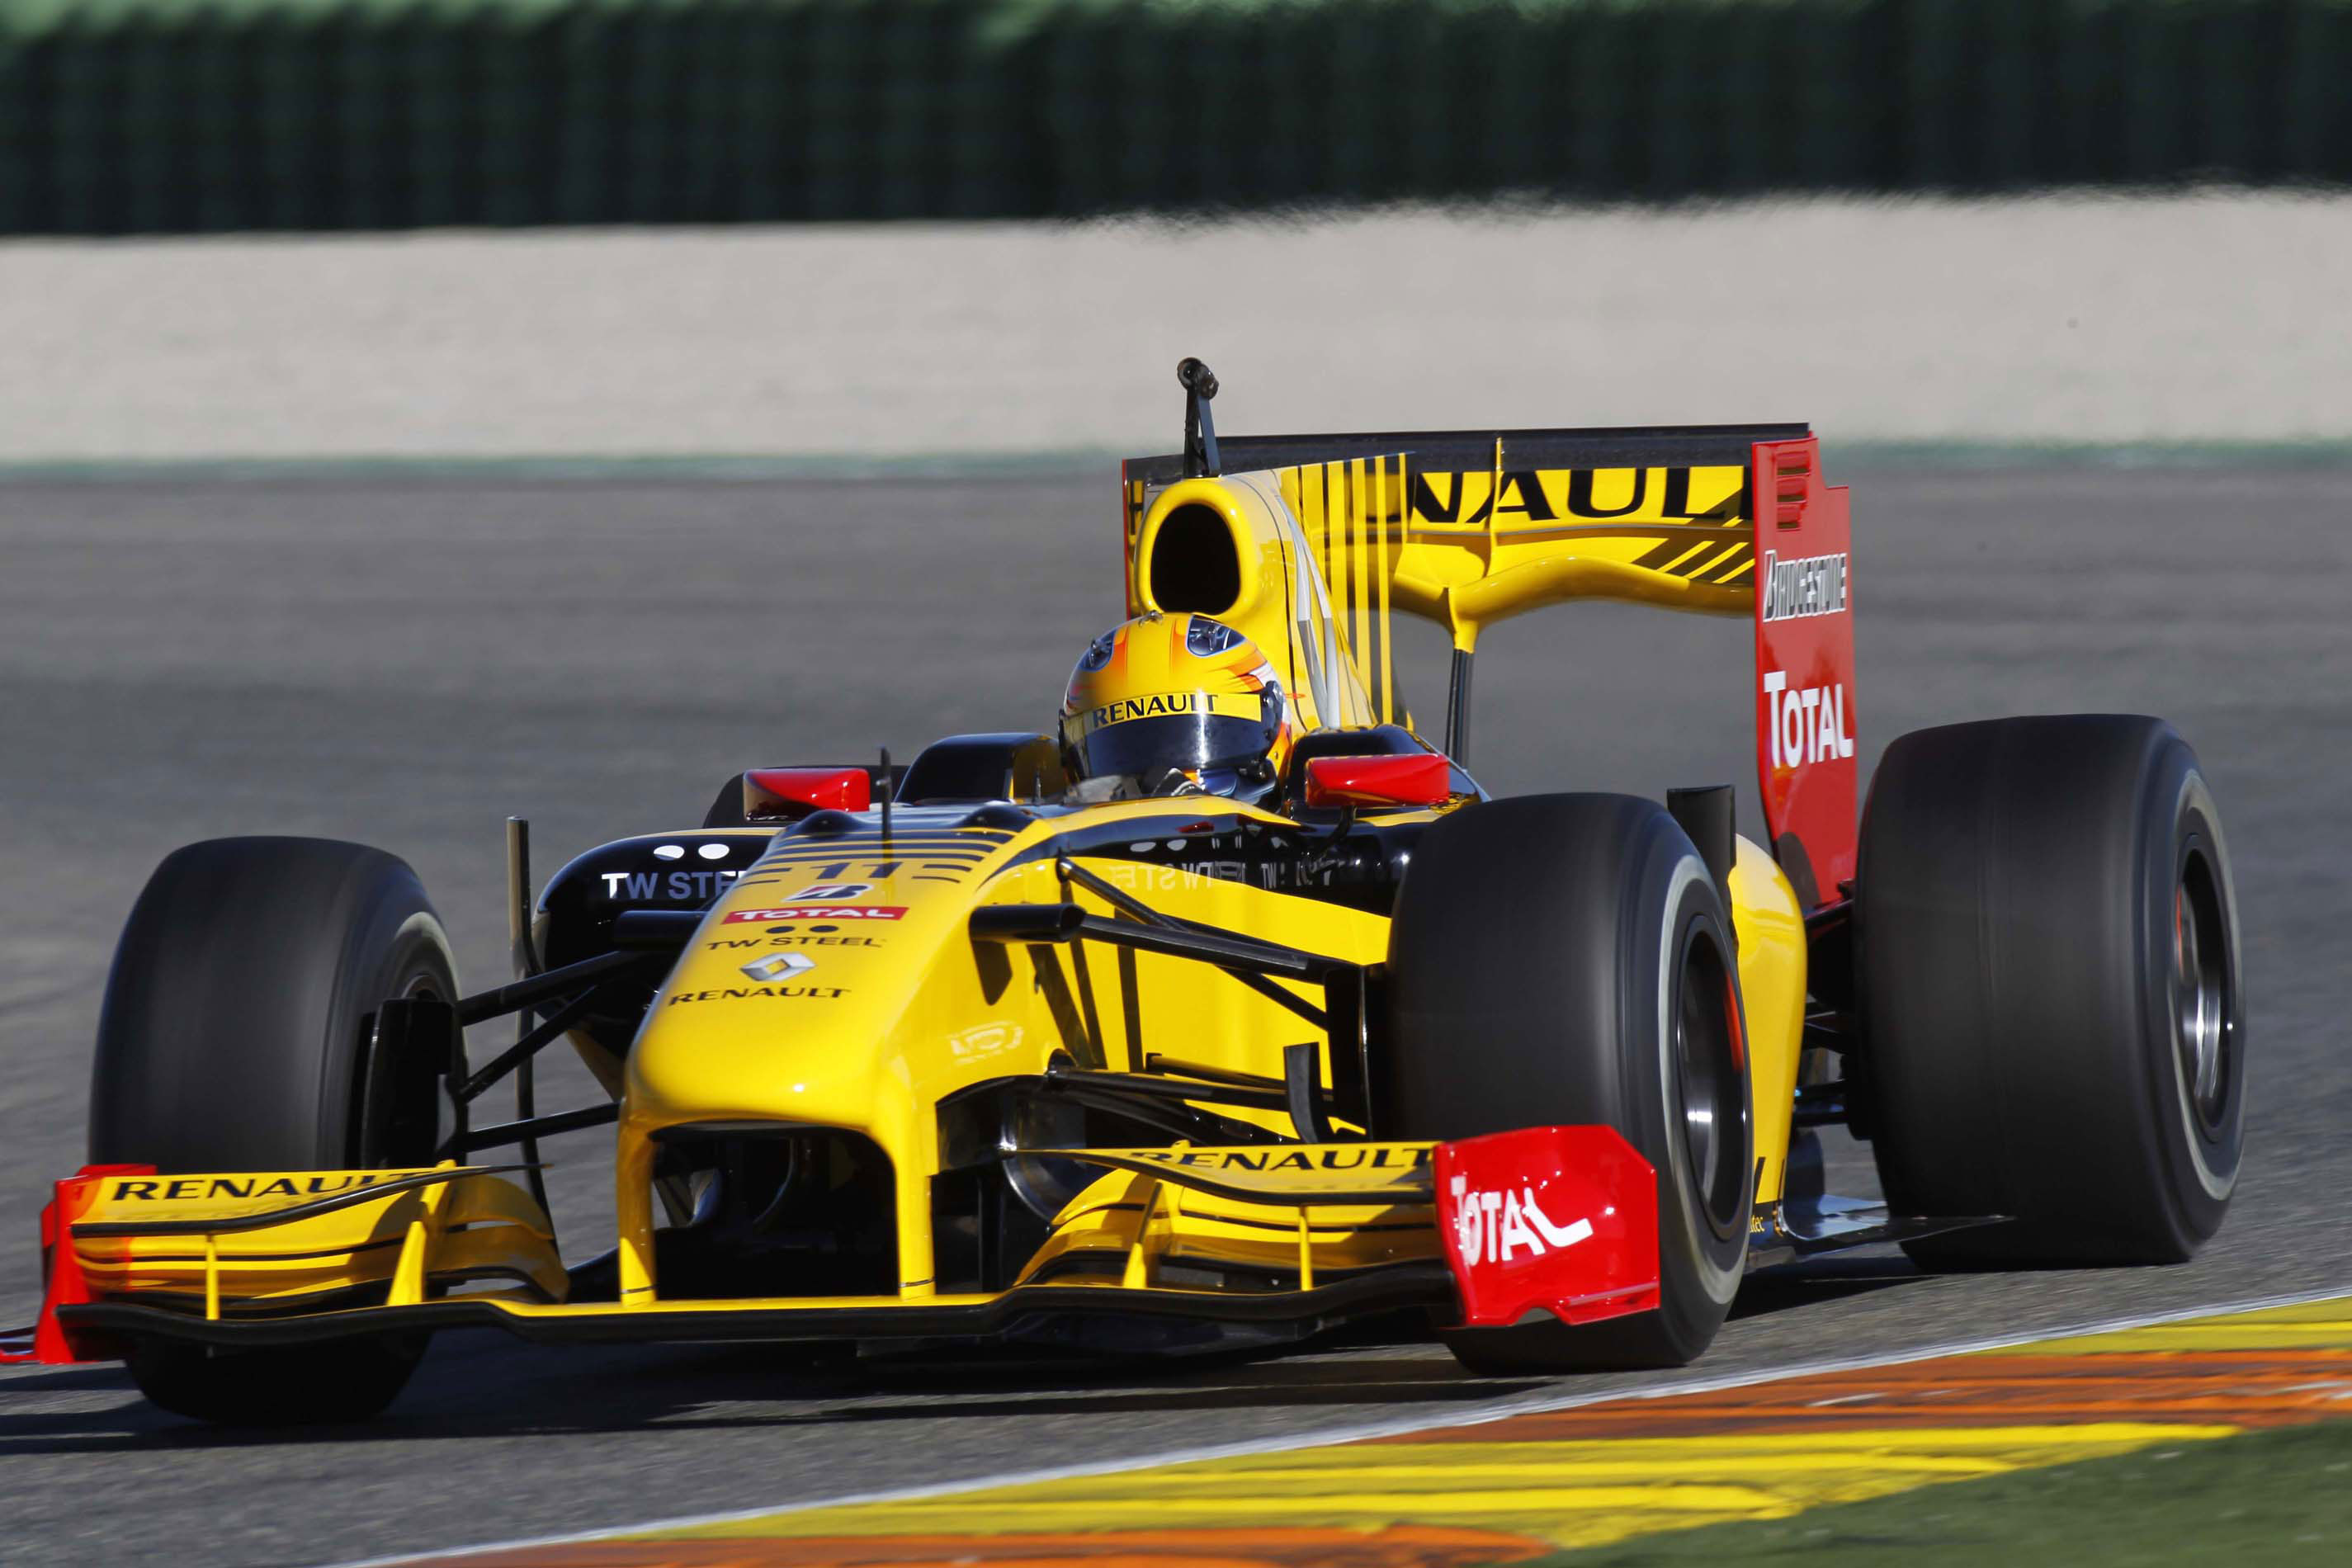 Renault R 30 photo 04